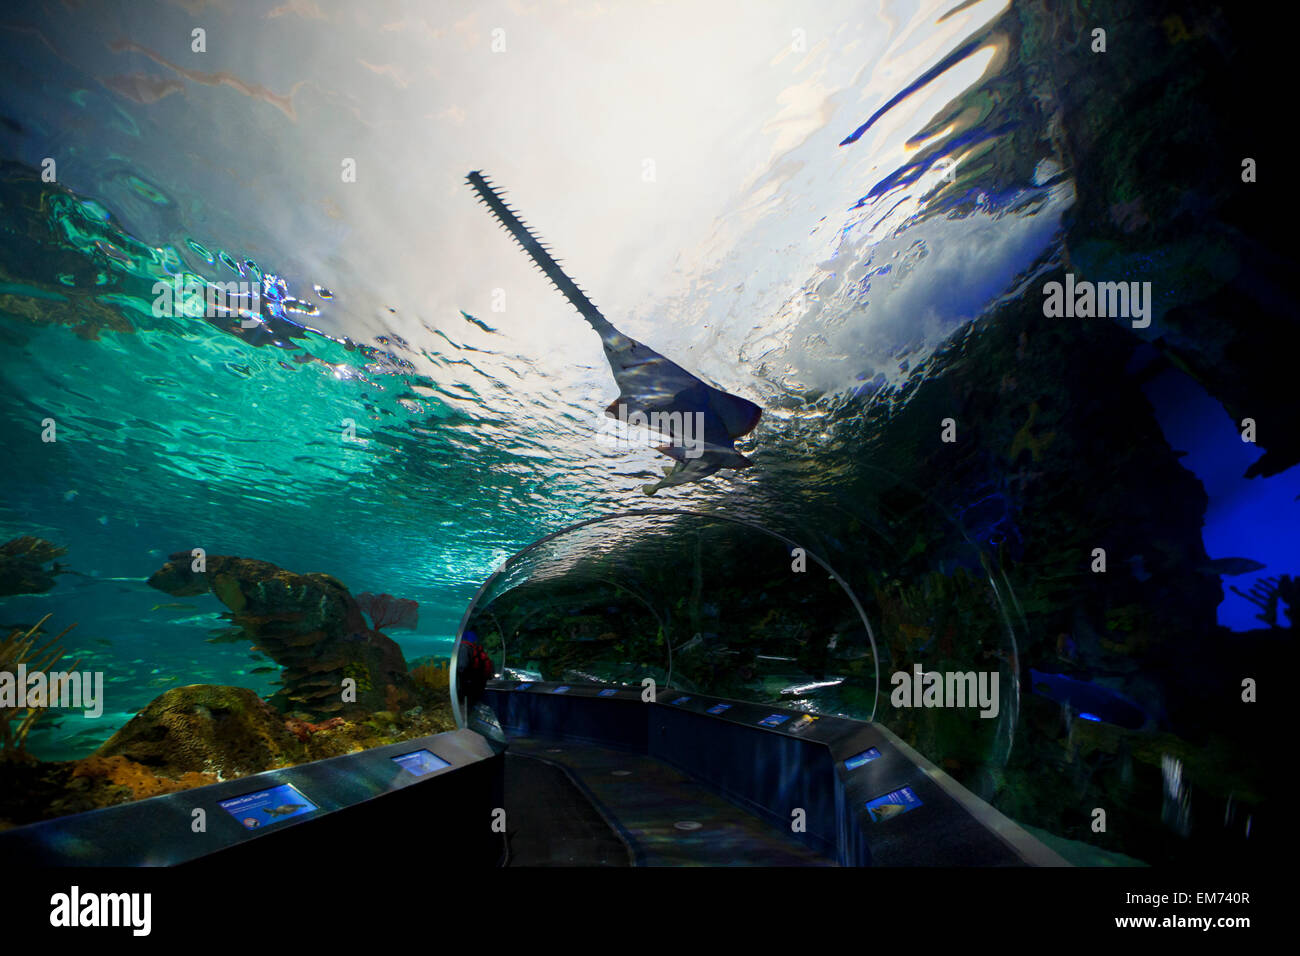 TORONTO- SEPTEMBER 15, 2014: The aquarium at Ripley's Aquarium Canada loacated at the foot of the CN tower in - Stock Image